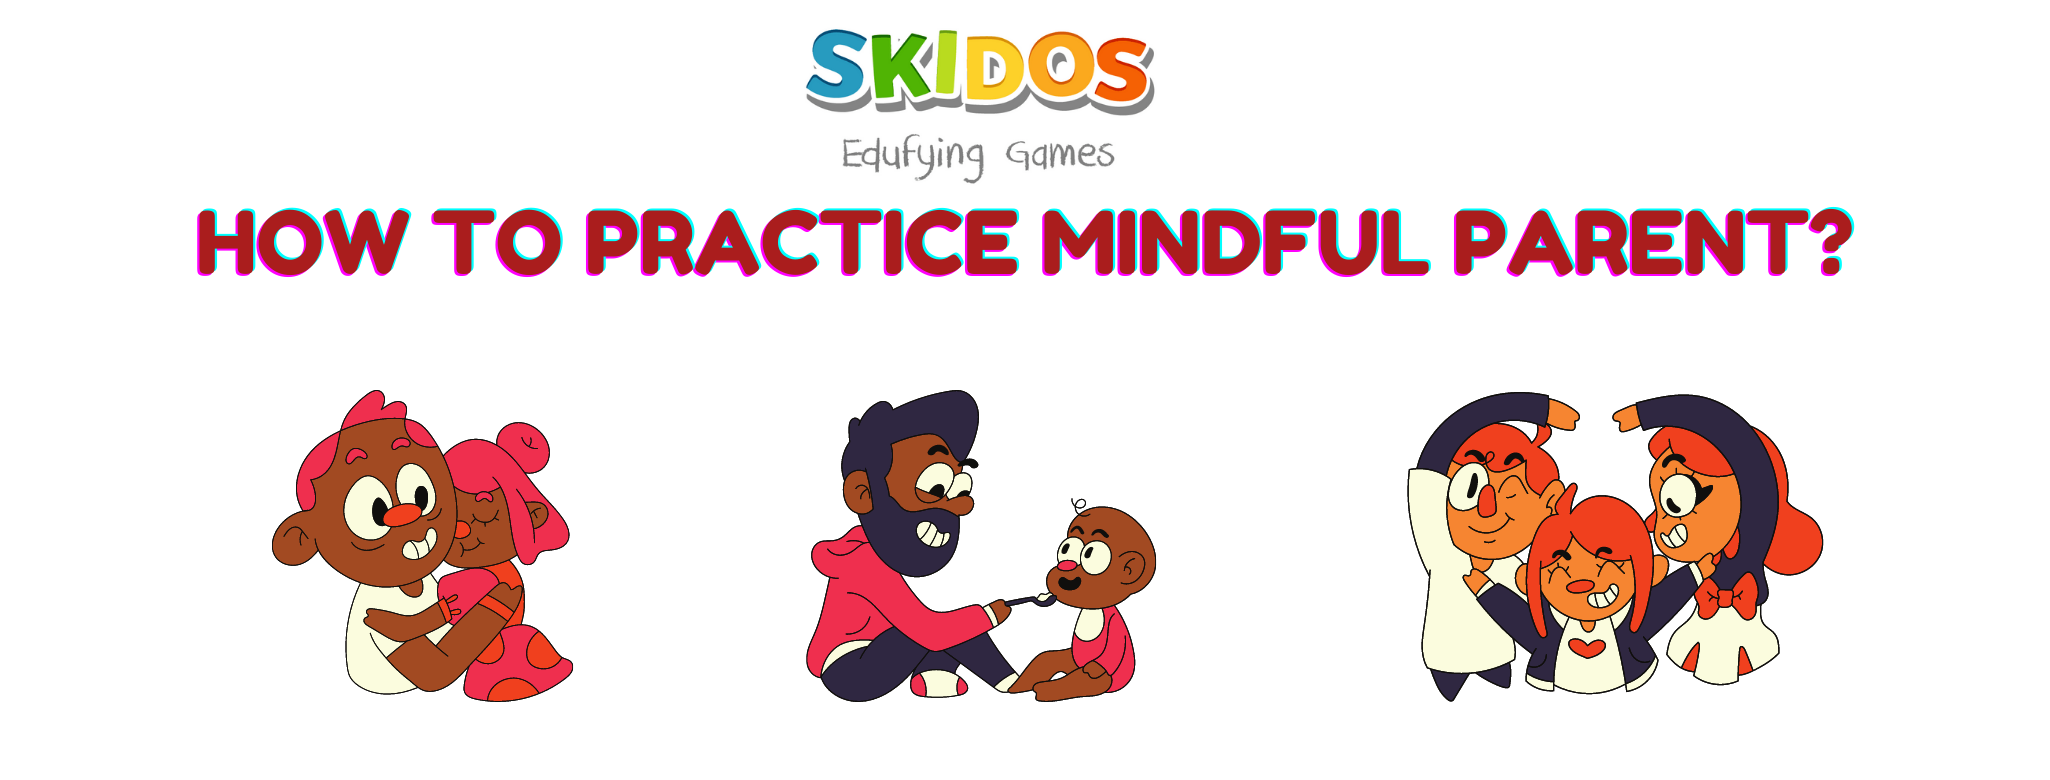 How to practice mindful parent?